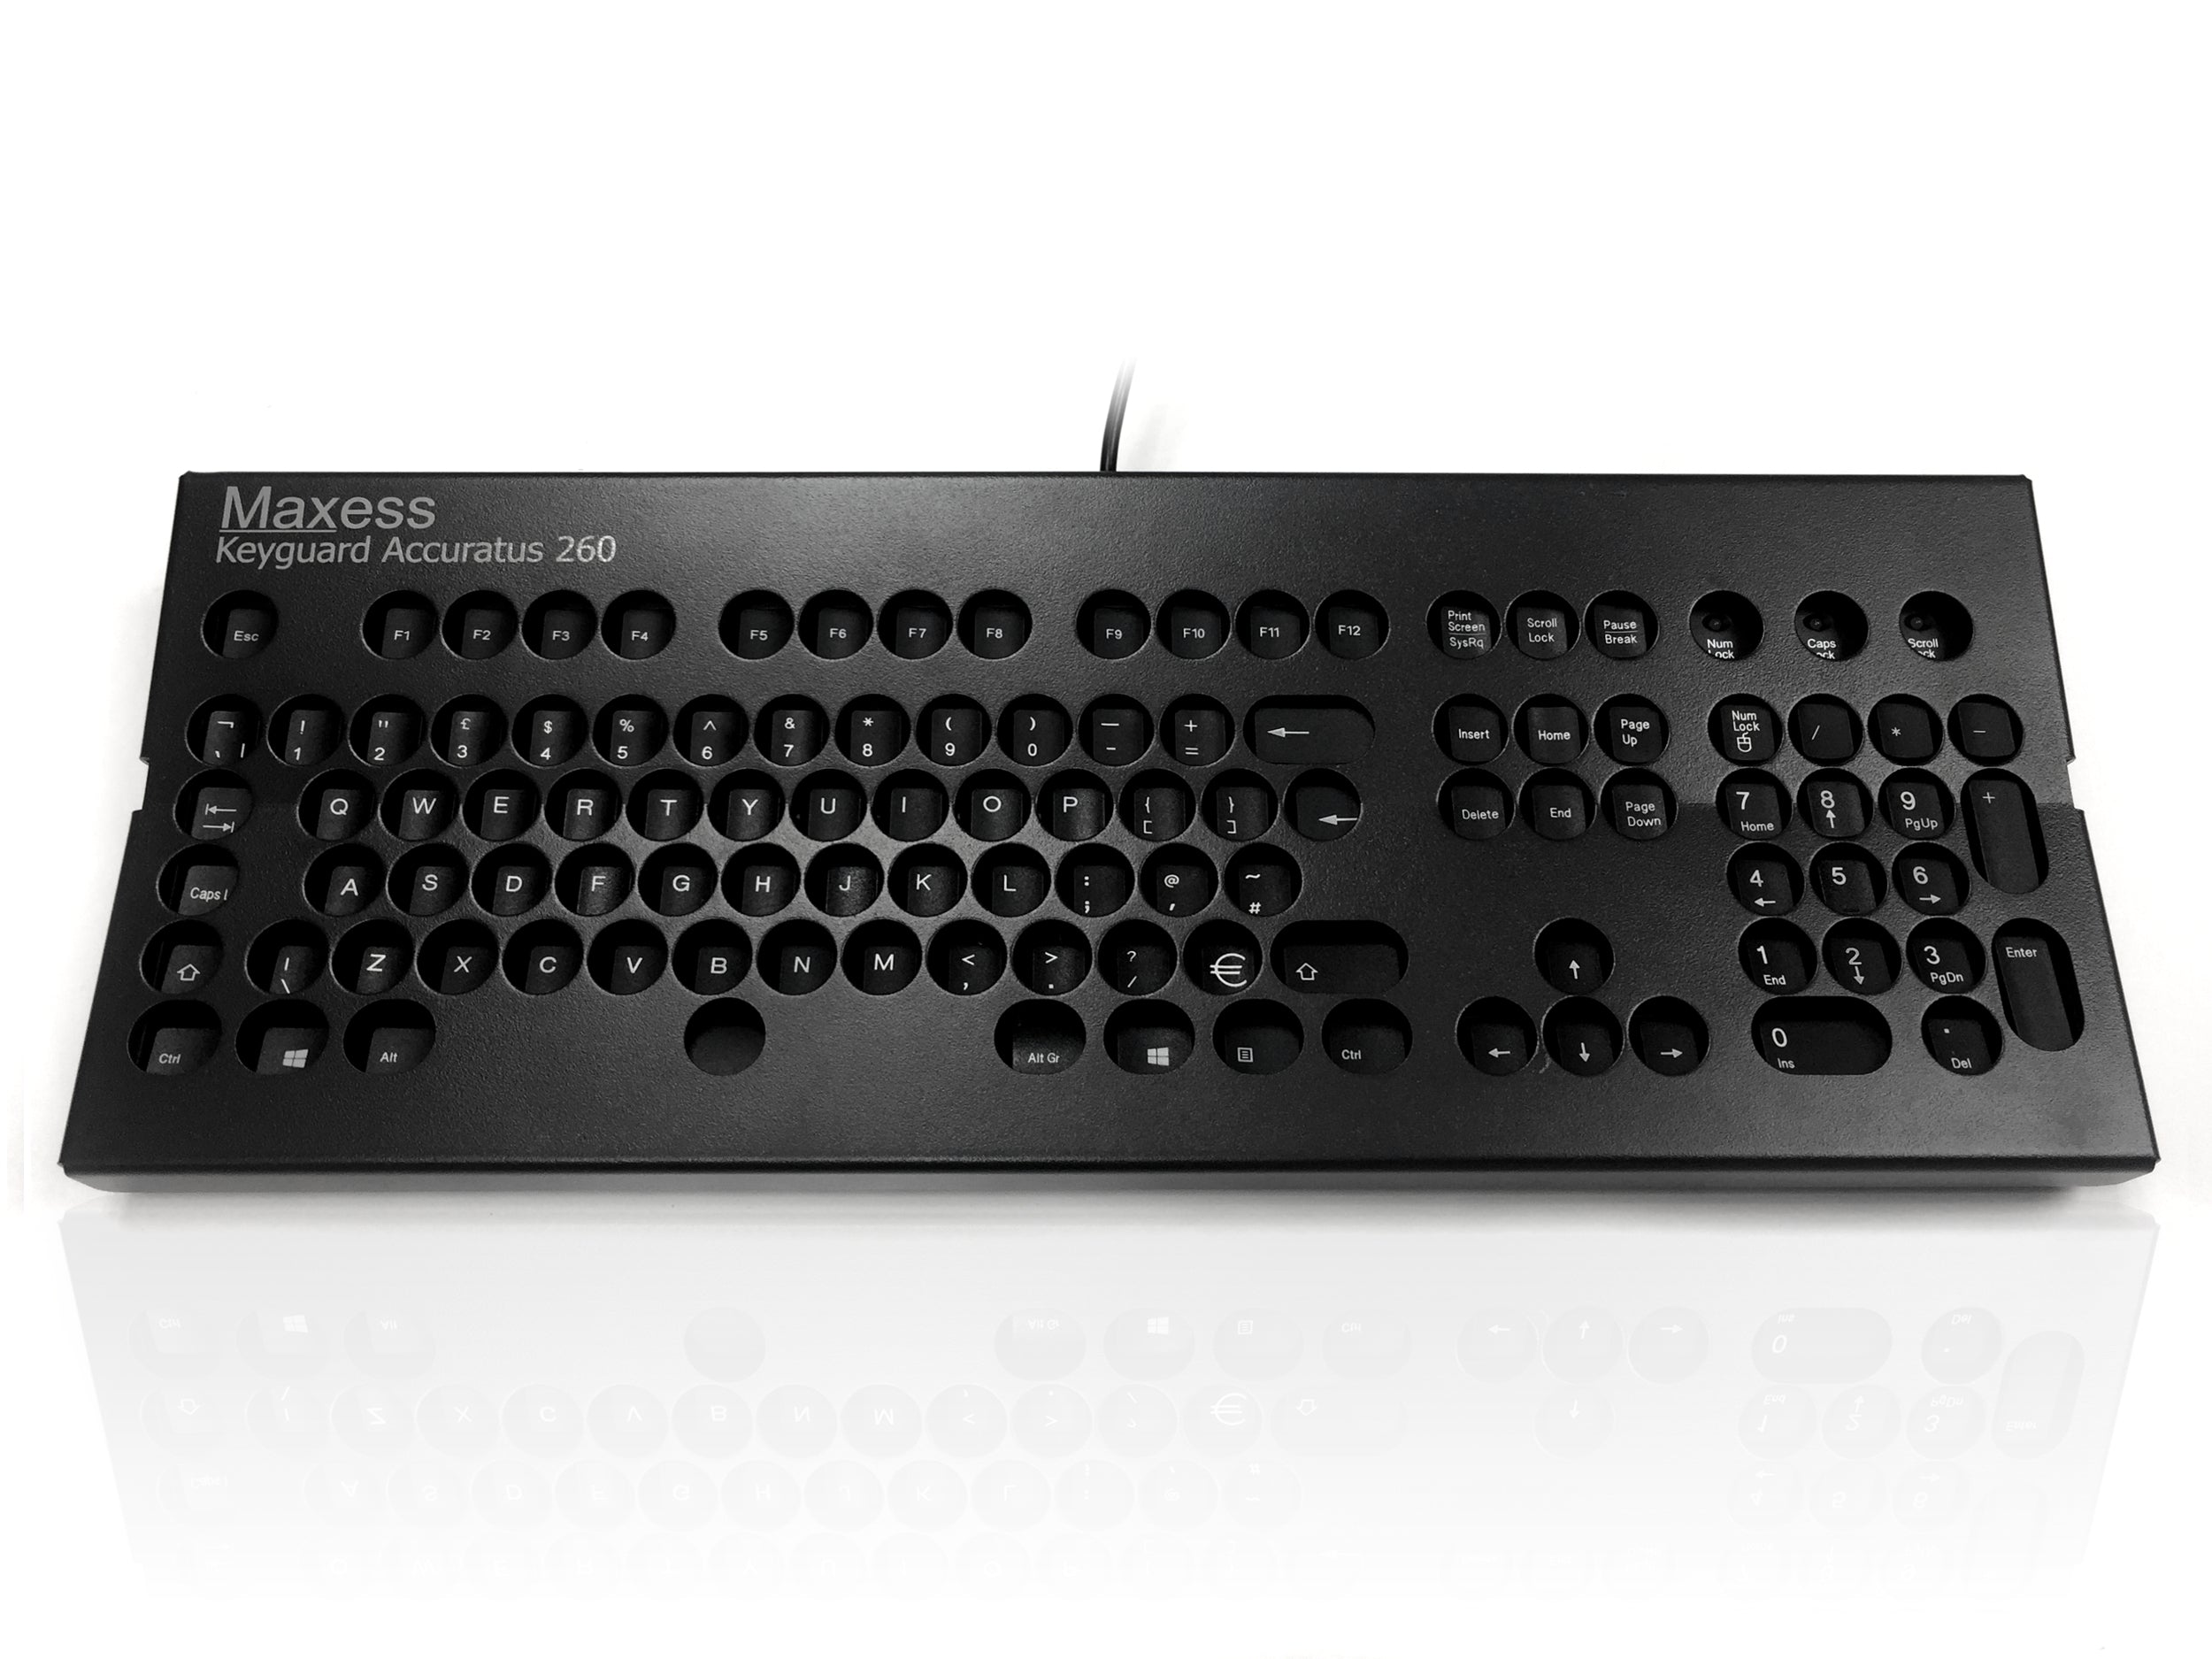 Accuratus 260 Keyguard - Metal Keyguard for Accuratus 260 Keyboards